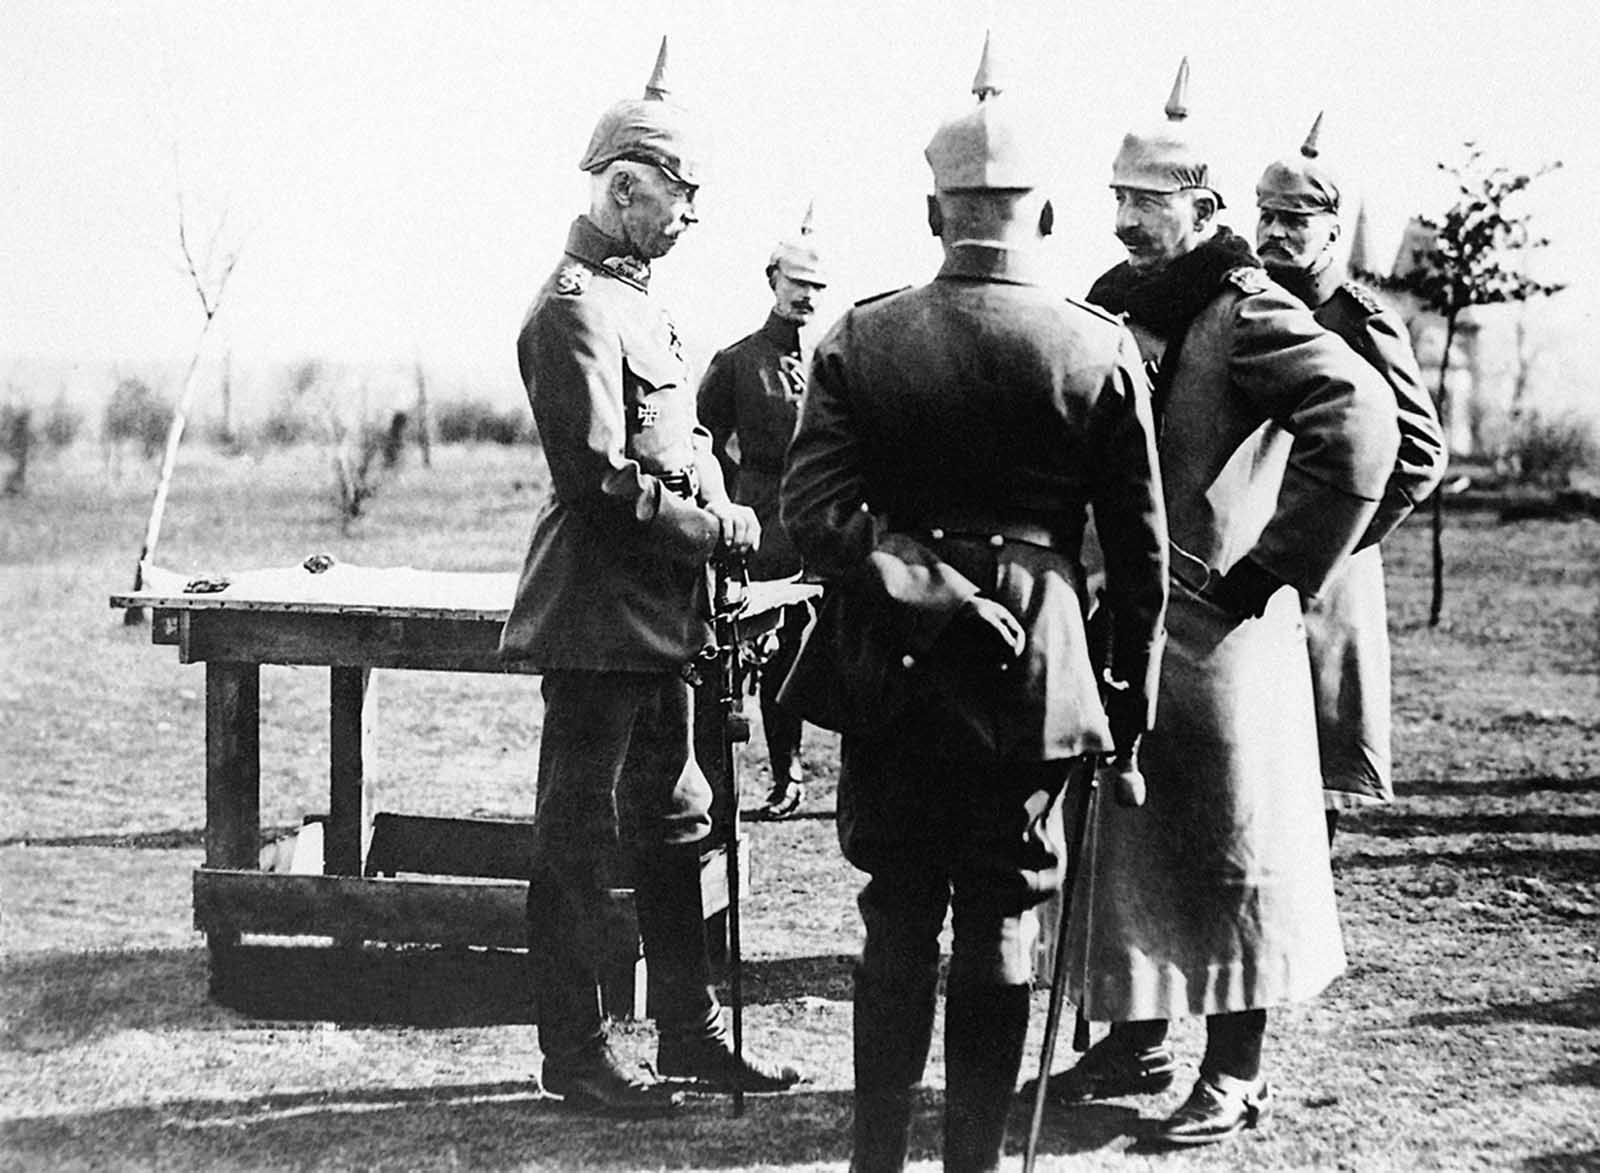 German officers in a discussion on the Western Front. (The man 2nd from right, in fur collar is possibly Kaiser Willhelm, the caption does not indicate). The German war plan had been for a swift, decisive victory in France. Little planning had been done for a long-term, slow-moving slog of a battle.